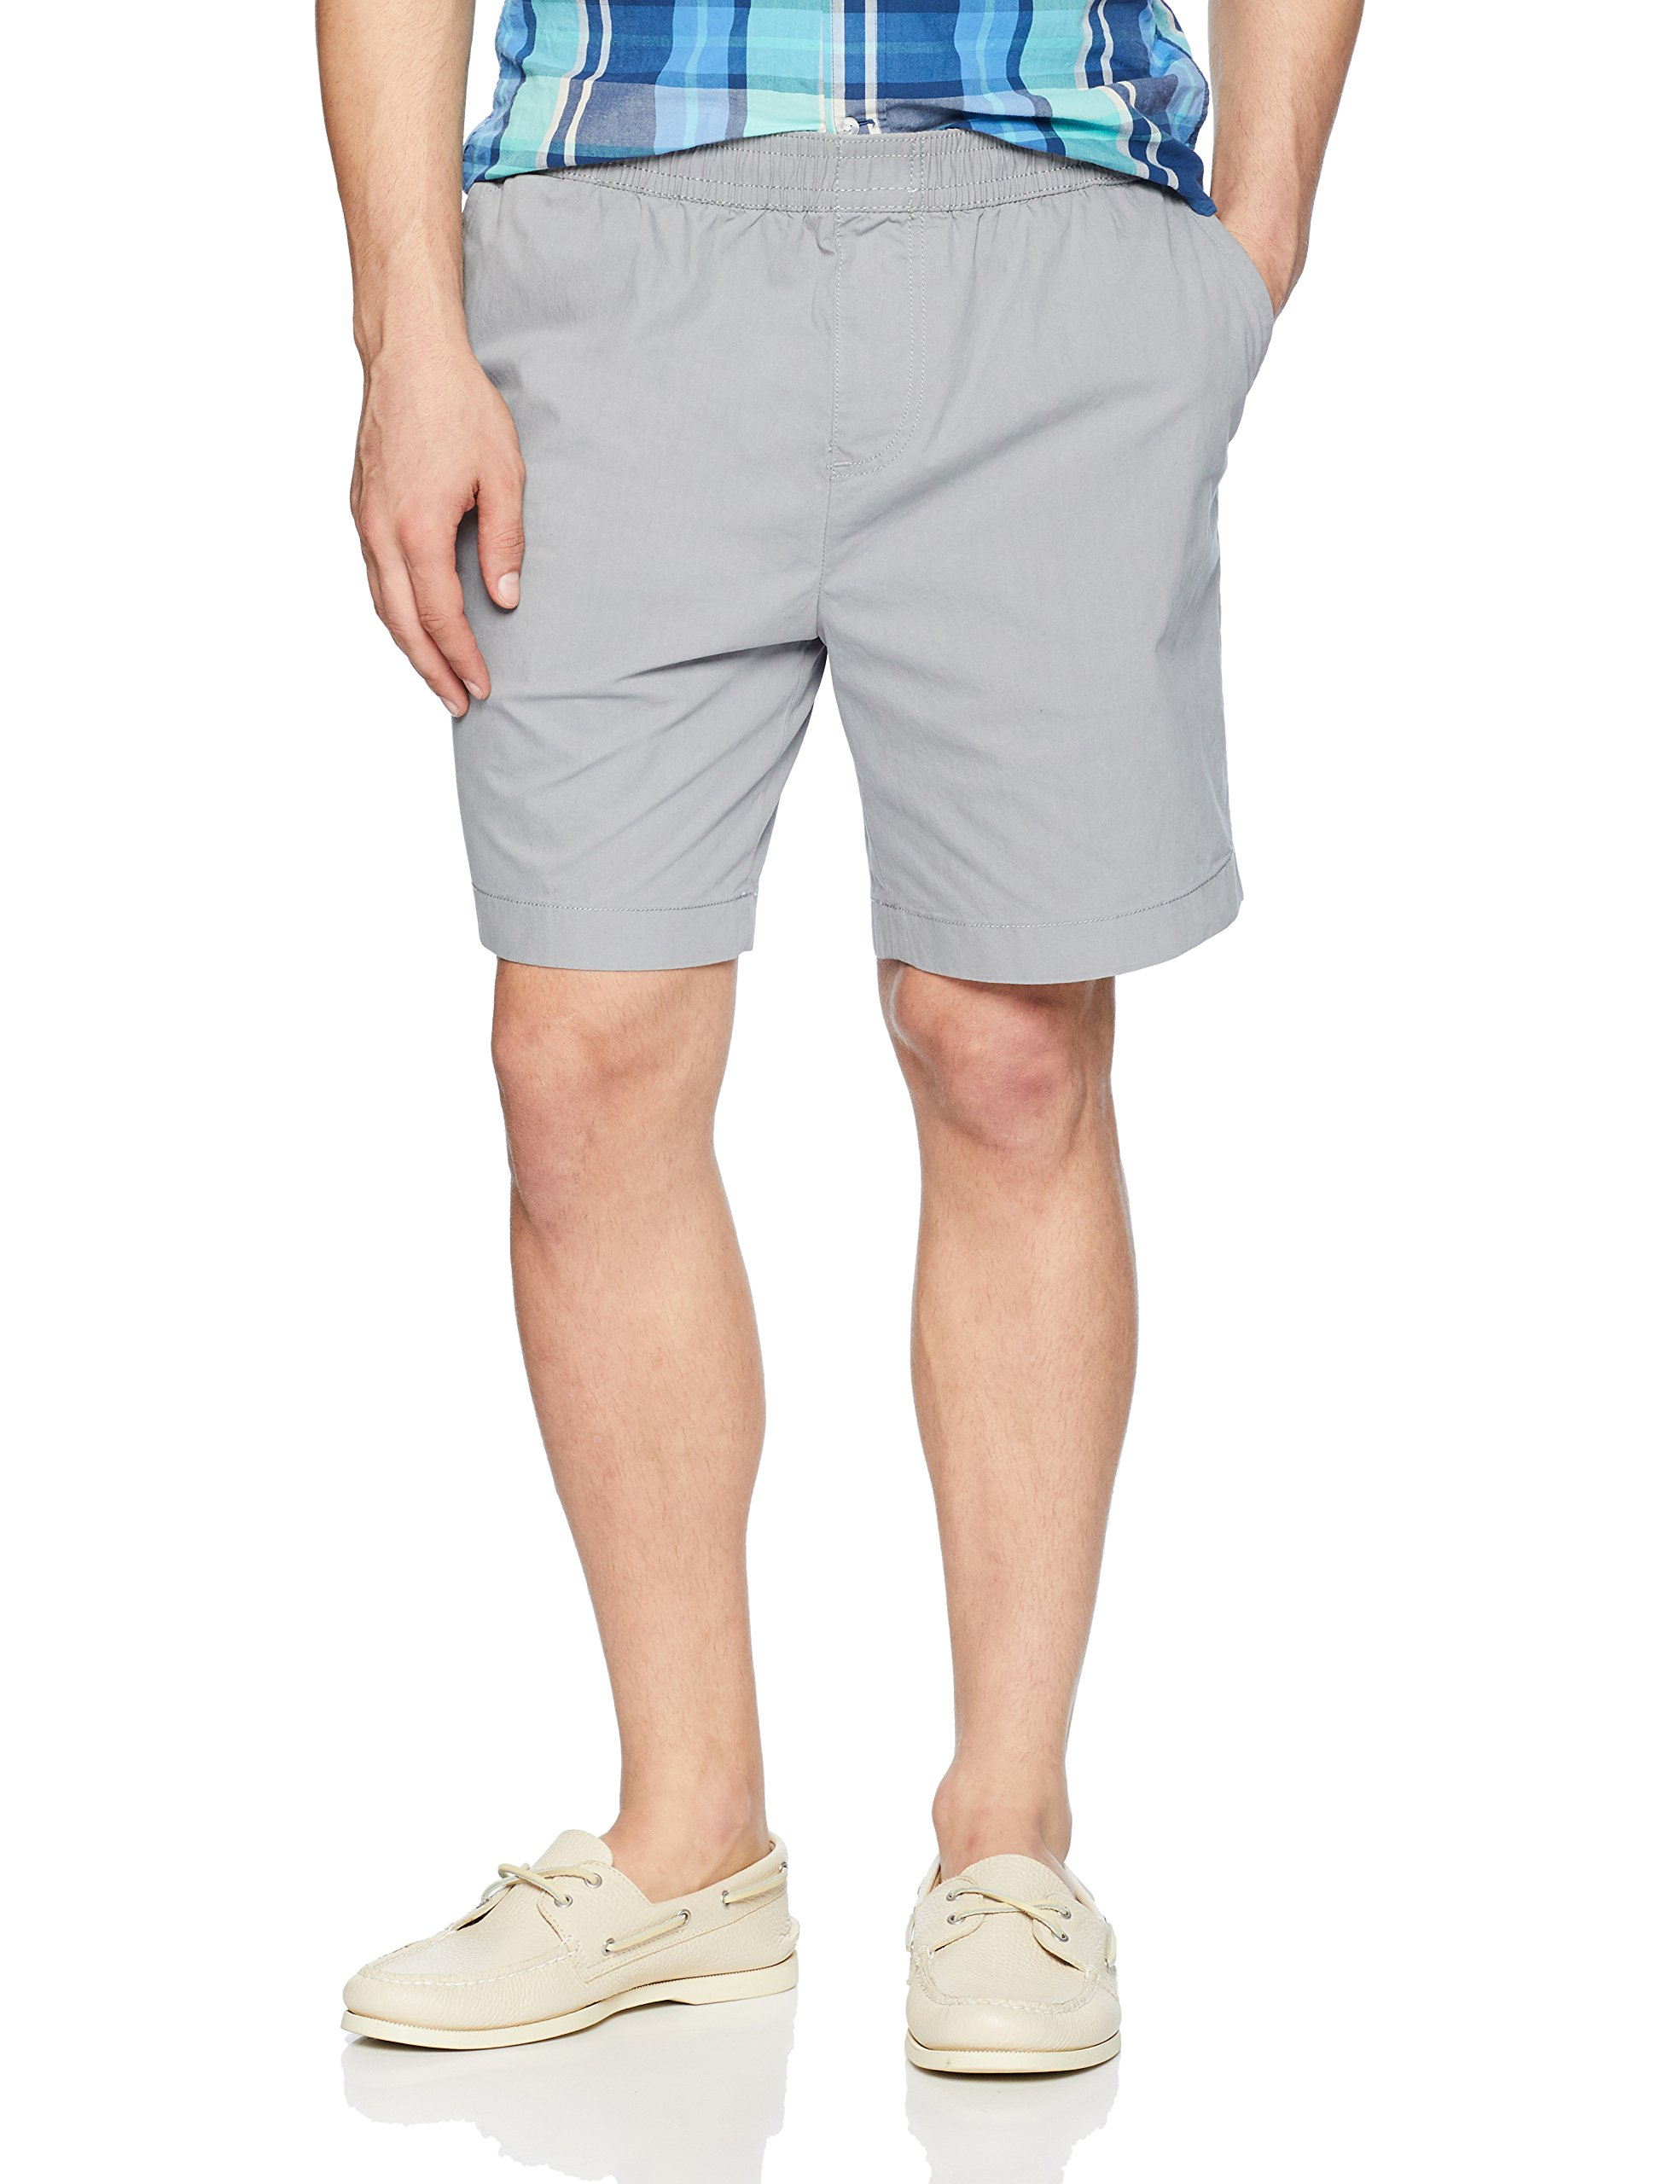 New-Nautica-Mens-Shorts-Gray-Size-Large-L-Casual-Boardwalk-Drawstring-55-266